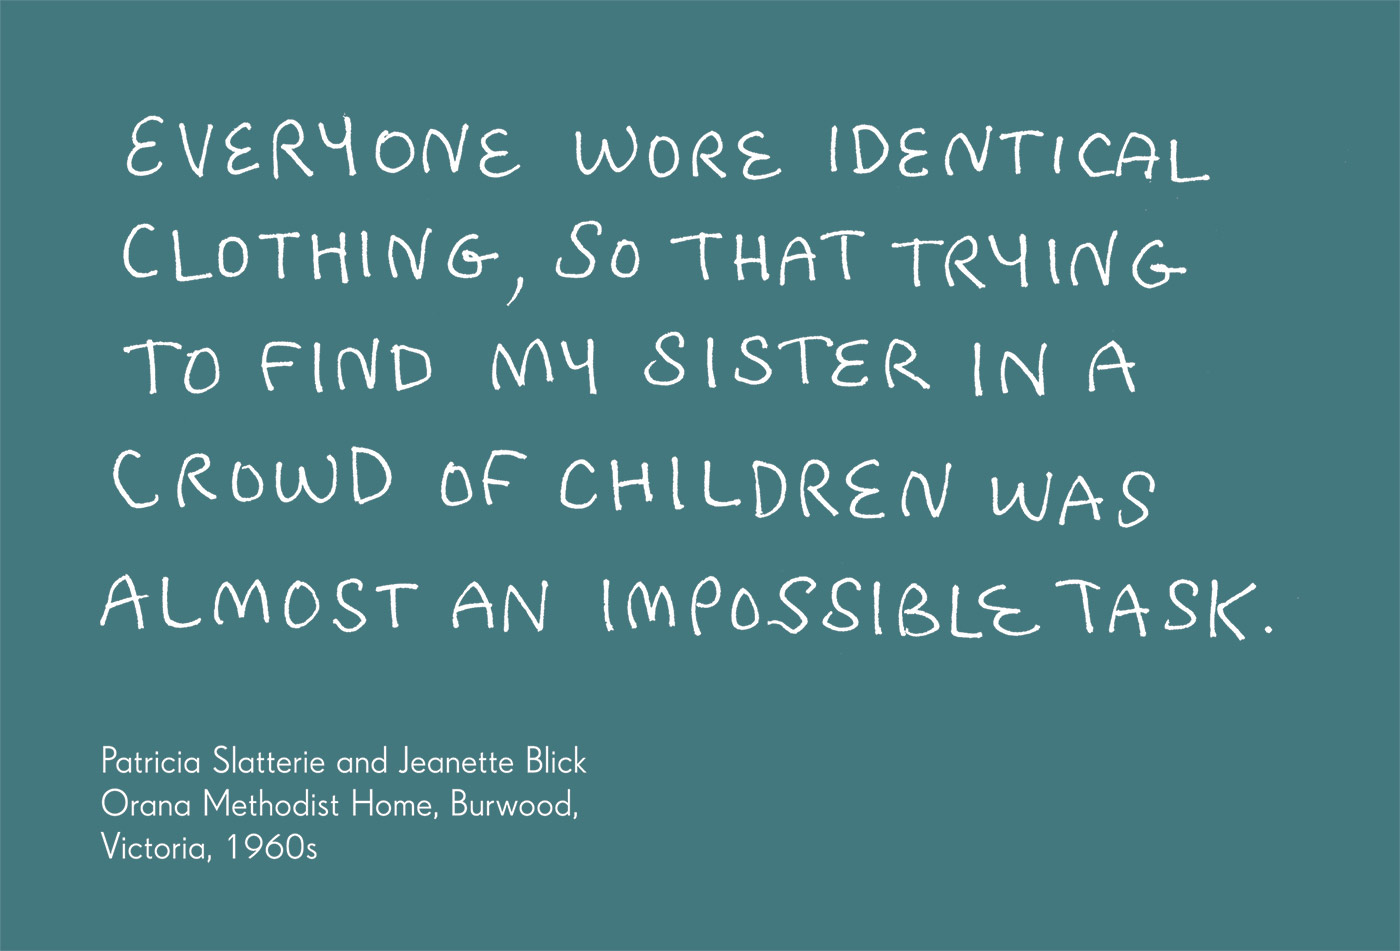 Exhibition graphic panel that reads: 'Everyone wore identical clothing, so that trying to find my sister in a crowd of children was almost an impossible task', attributed to 'Patricia Slatterie and Jeannette Blick, Orana Methodist Home, Burwood, Victoria, 1960s'. - click to view larger image